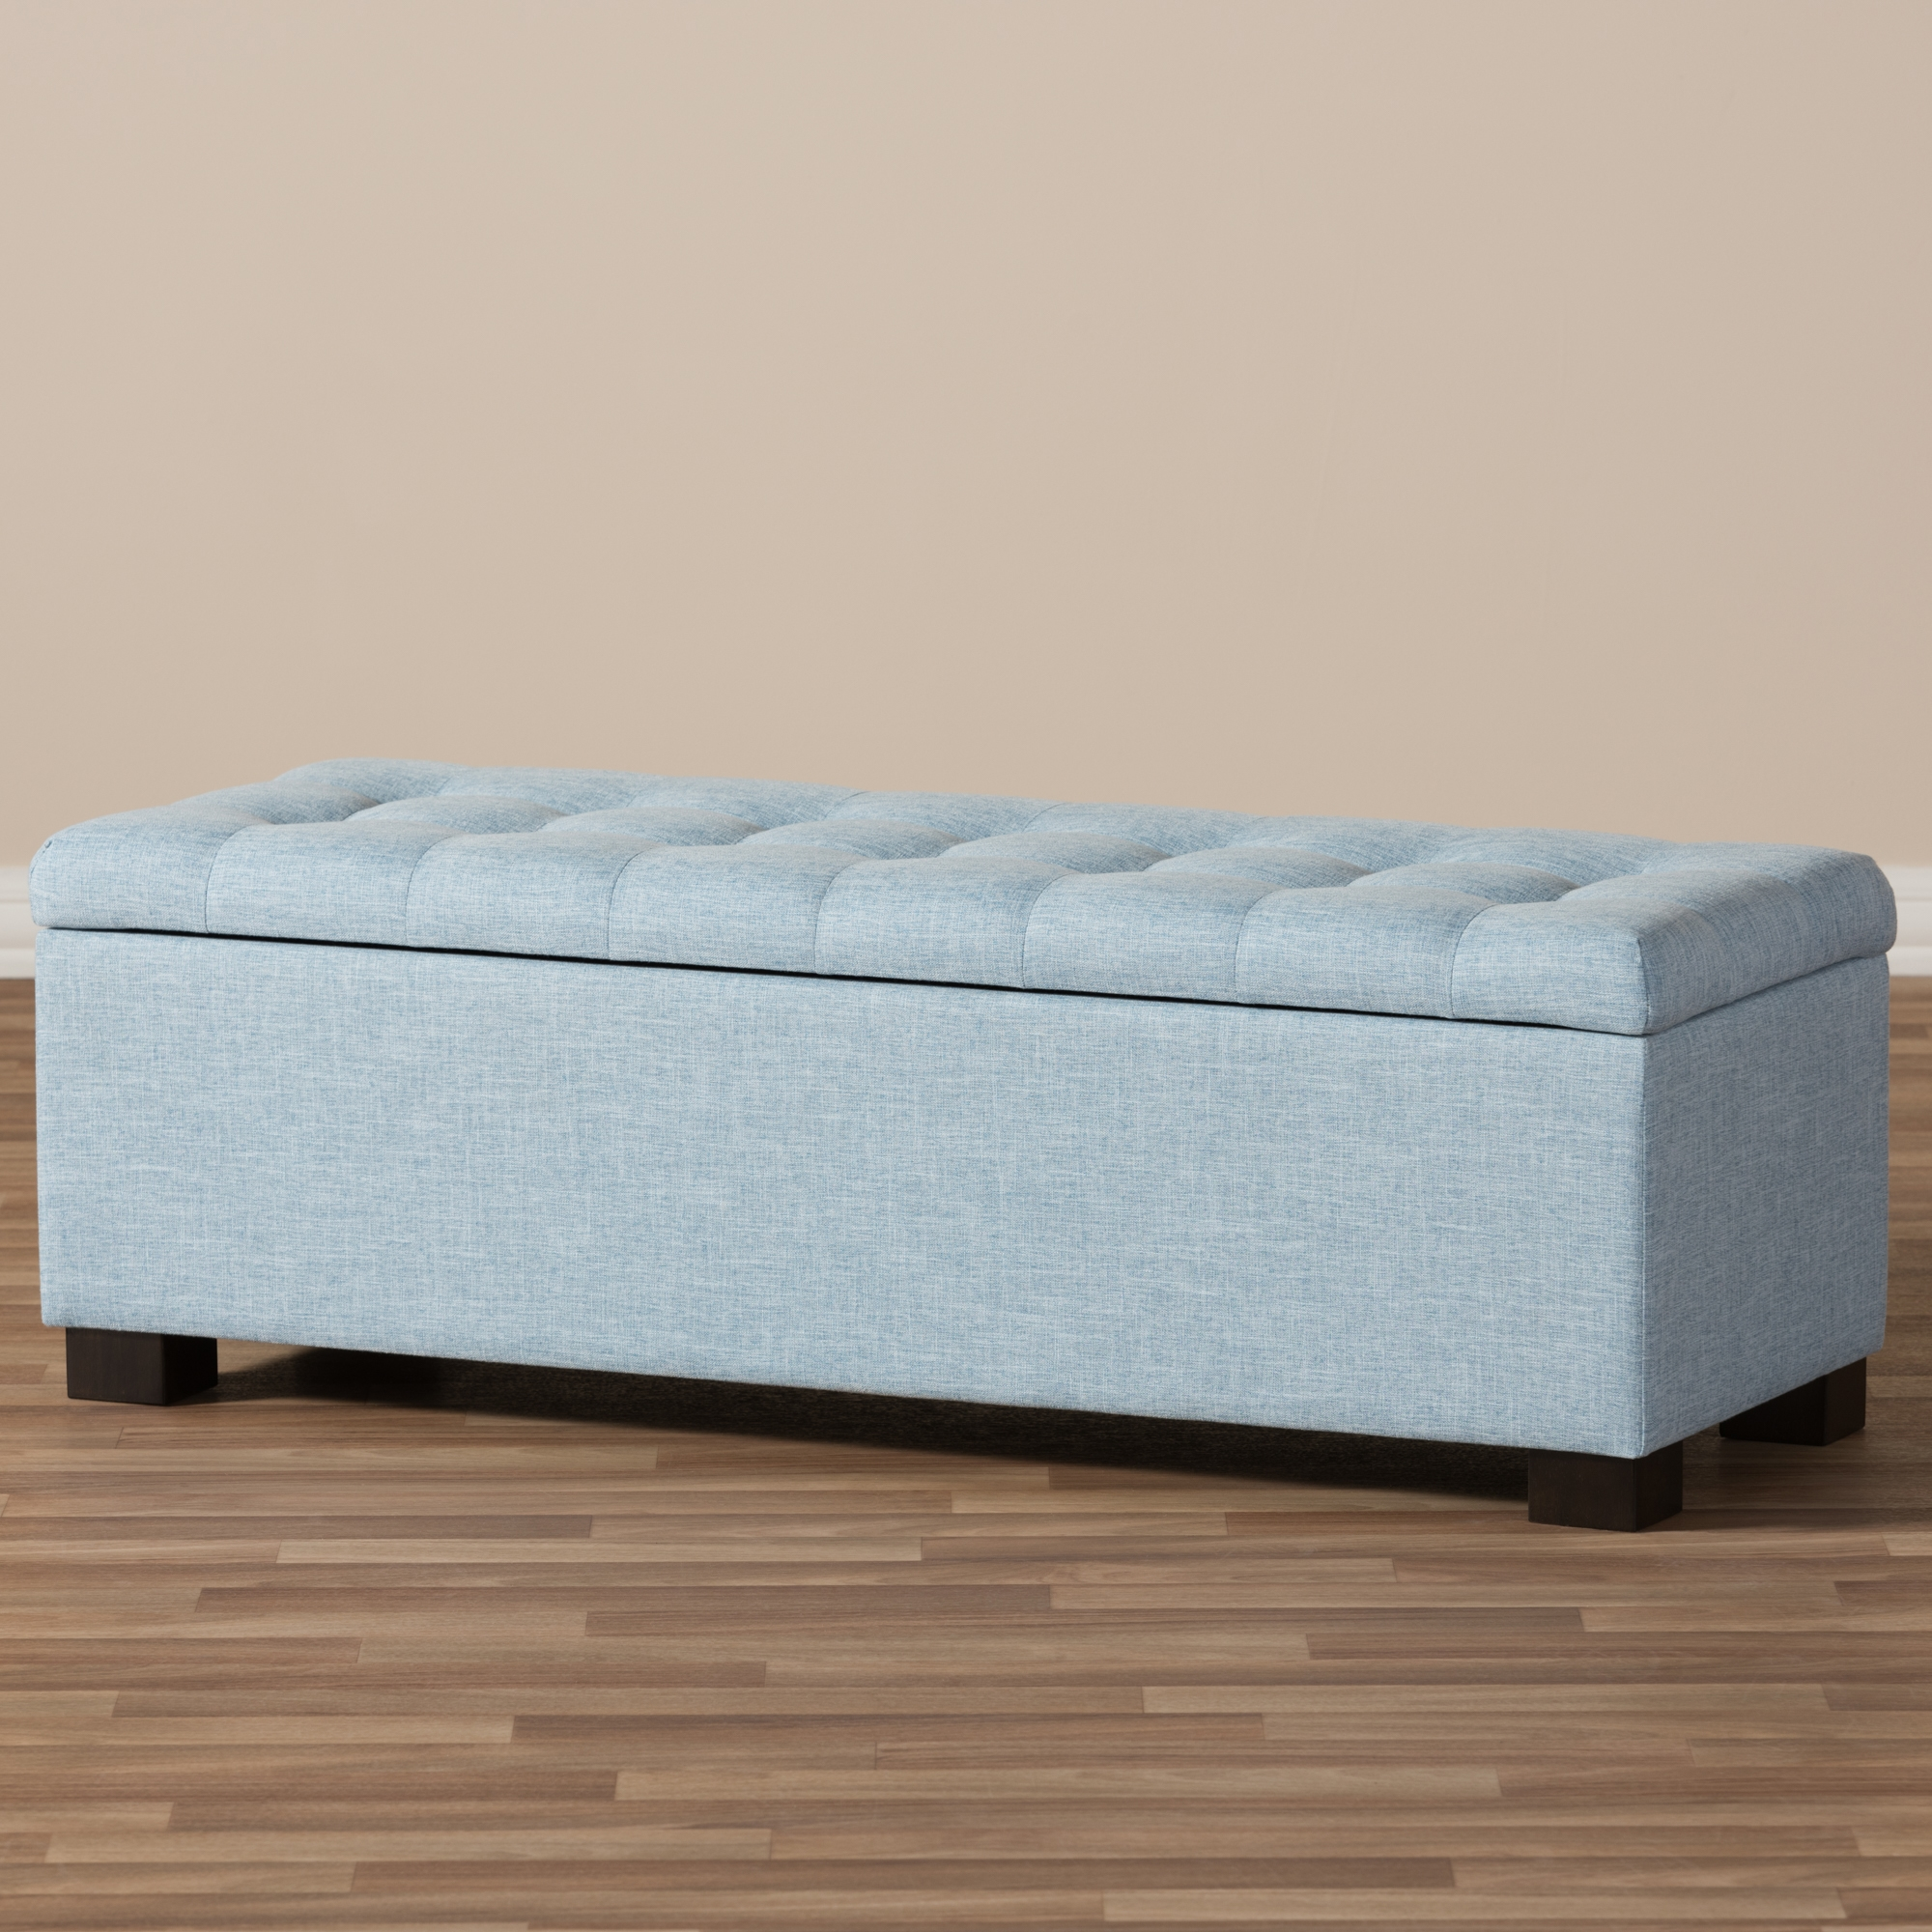 ... Baxton Studio Roanoke Modern And Contemporary Light Blue Fabric  Upholstered Grid Tufting Storage Ottoman Bench